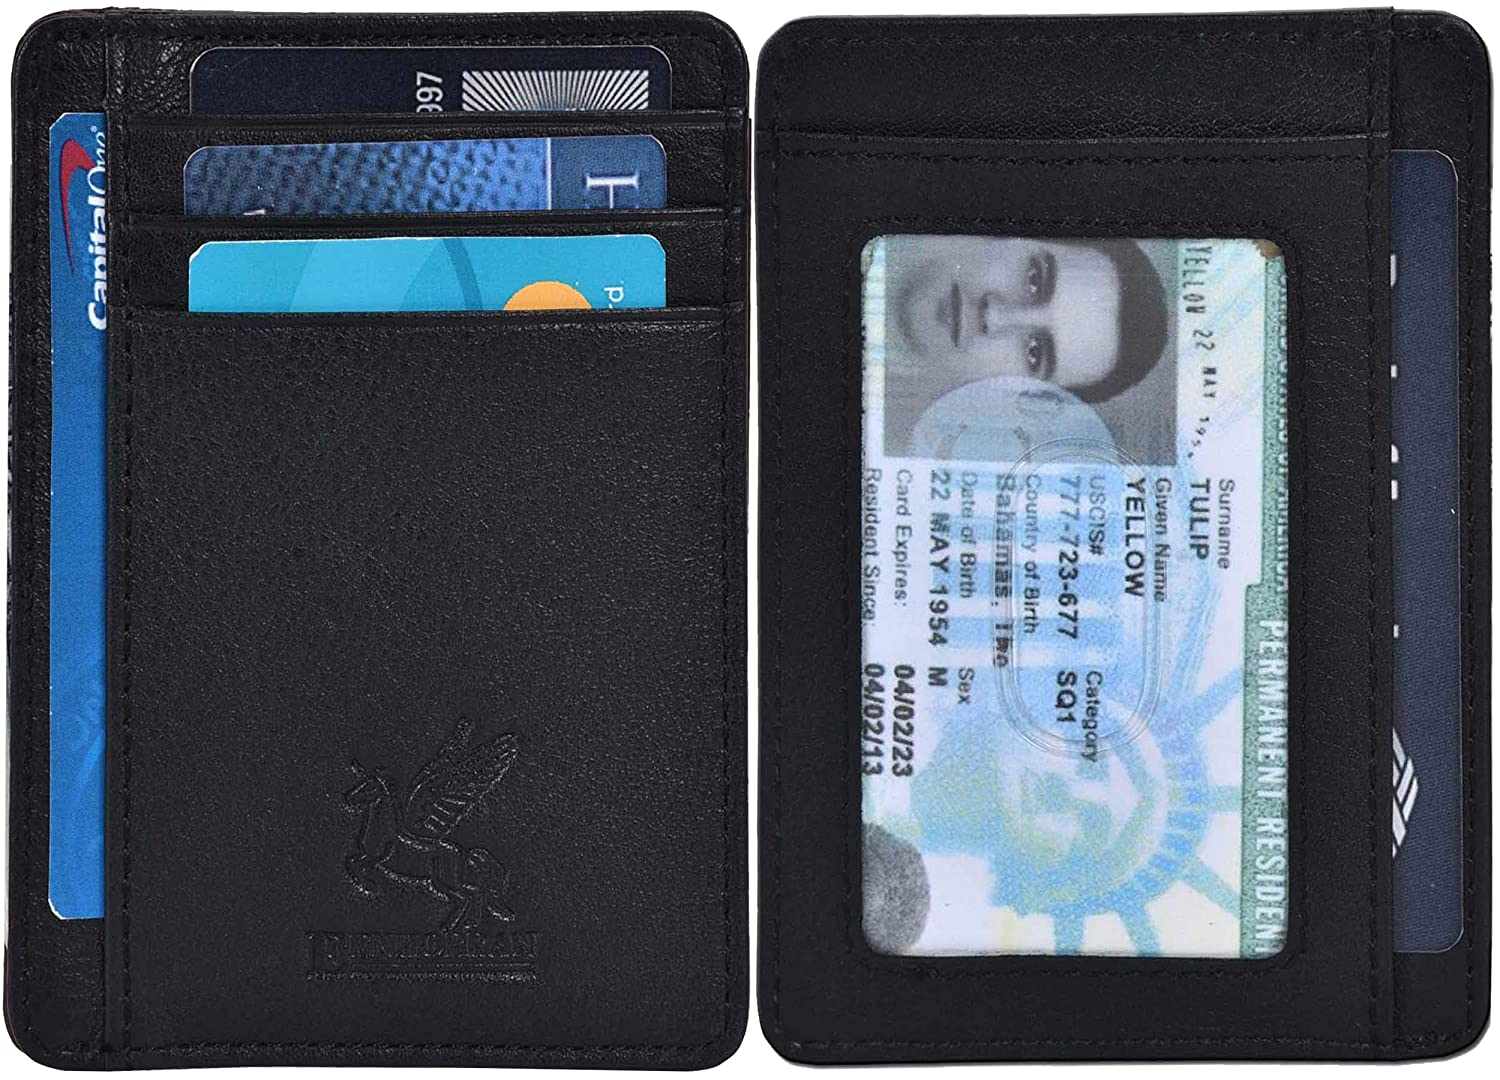 ce6f100d6f9 Amazon.com  Slim Wallet RFID Front Pocket Wallet Minimalist Secure Thin  Credit Card Holder with ID Slot  Clothing